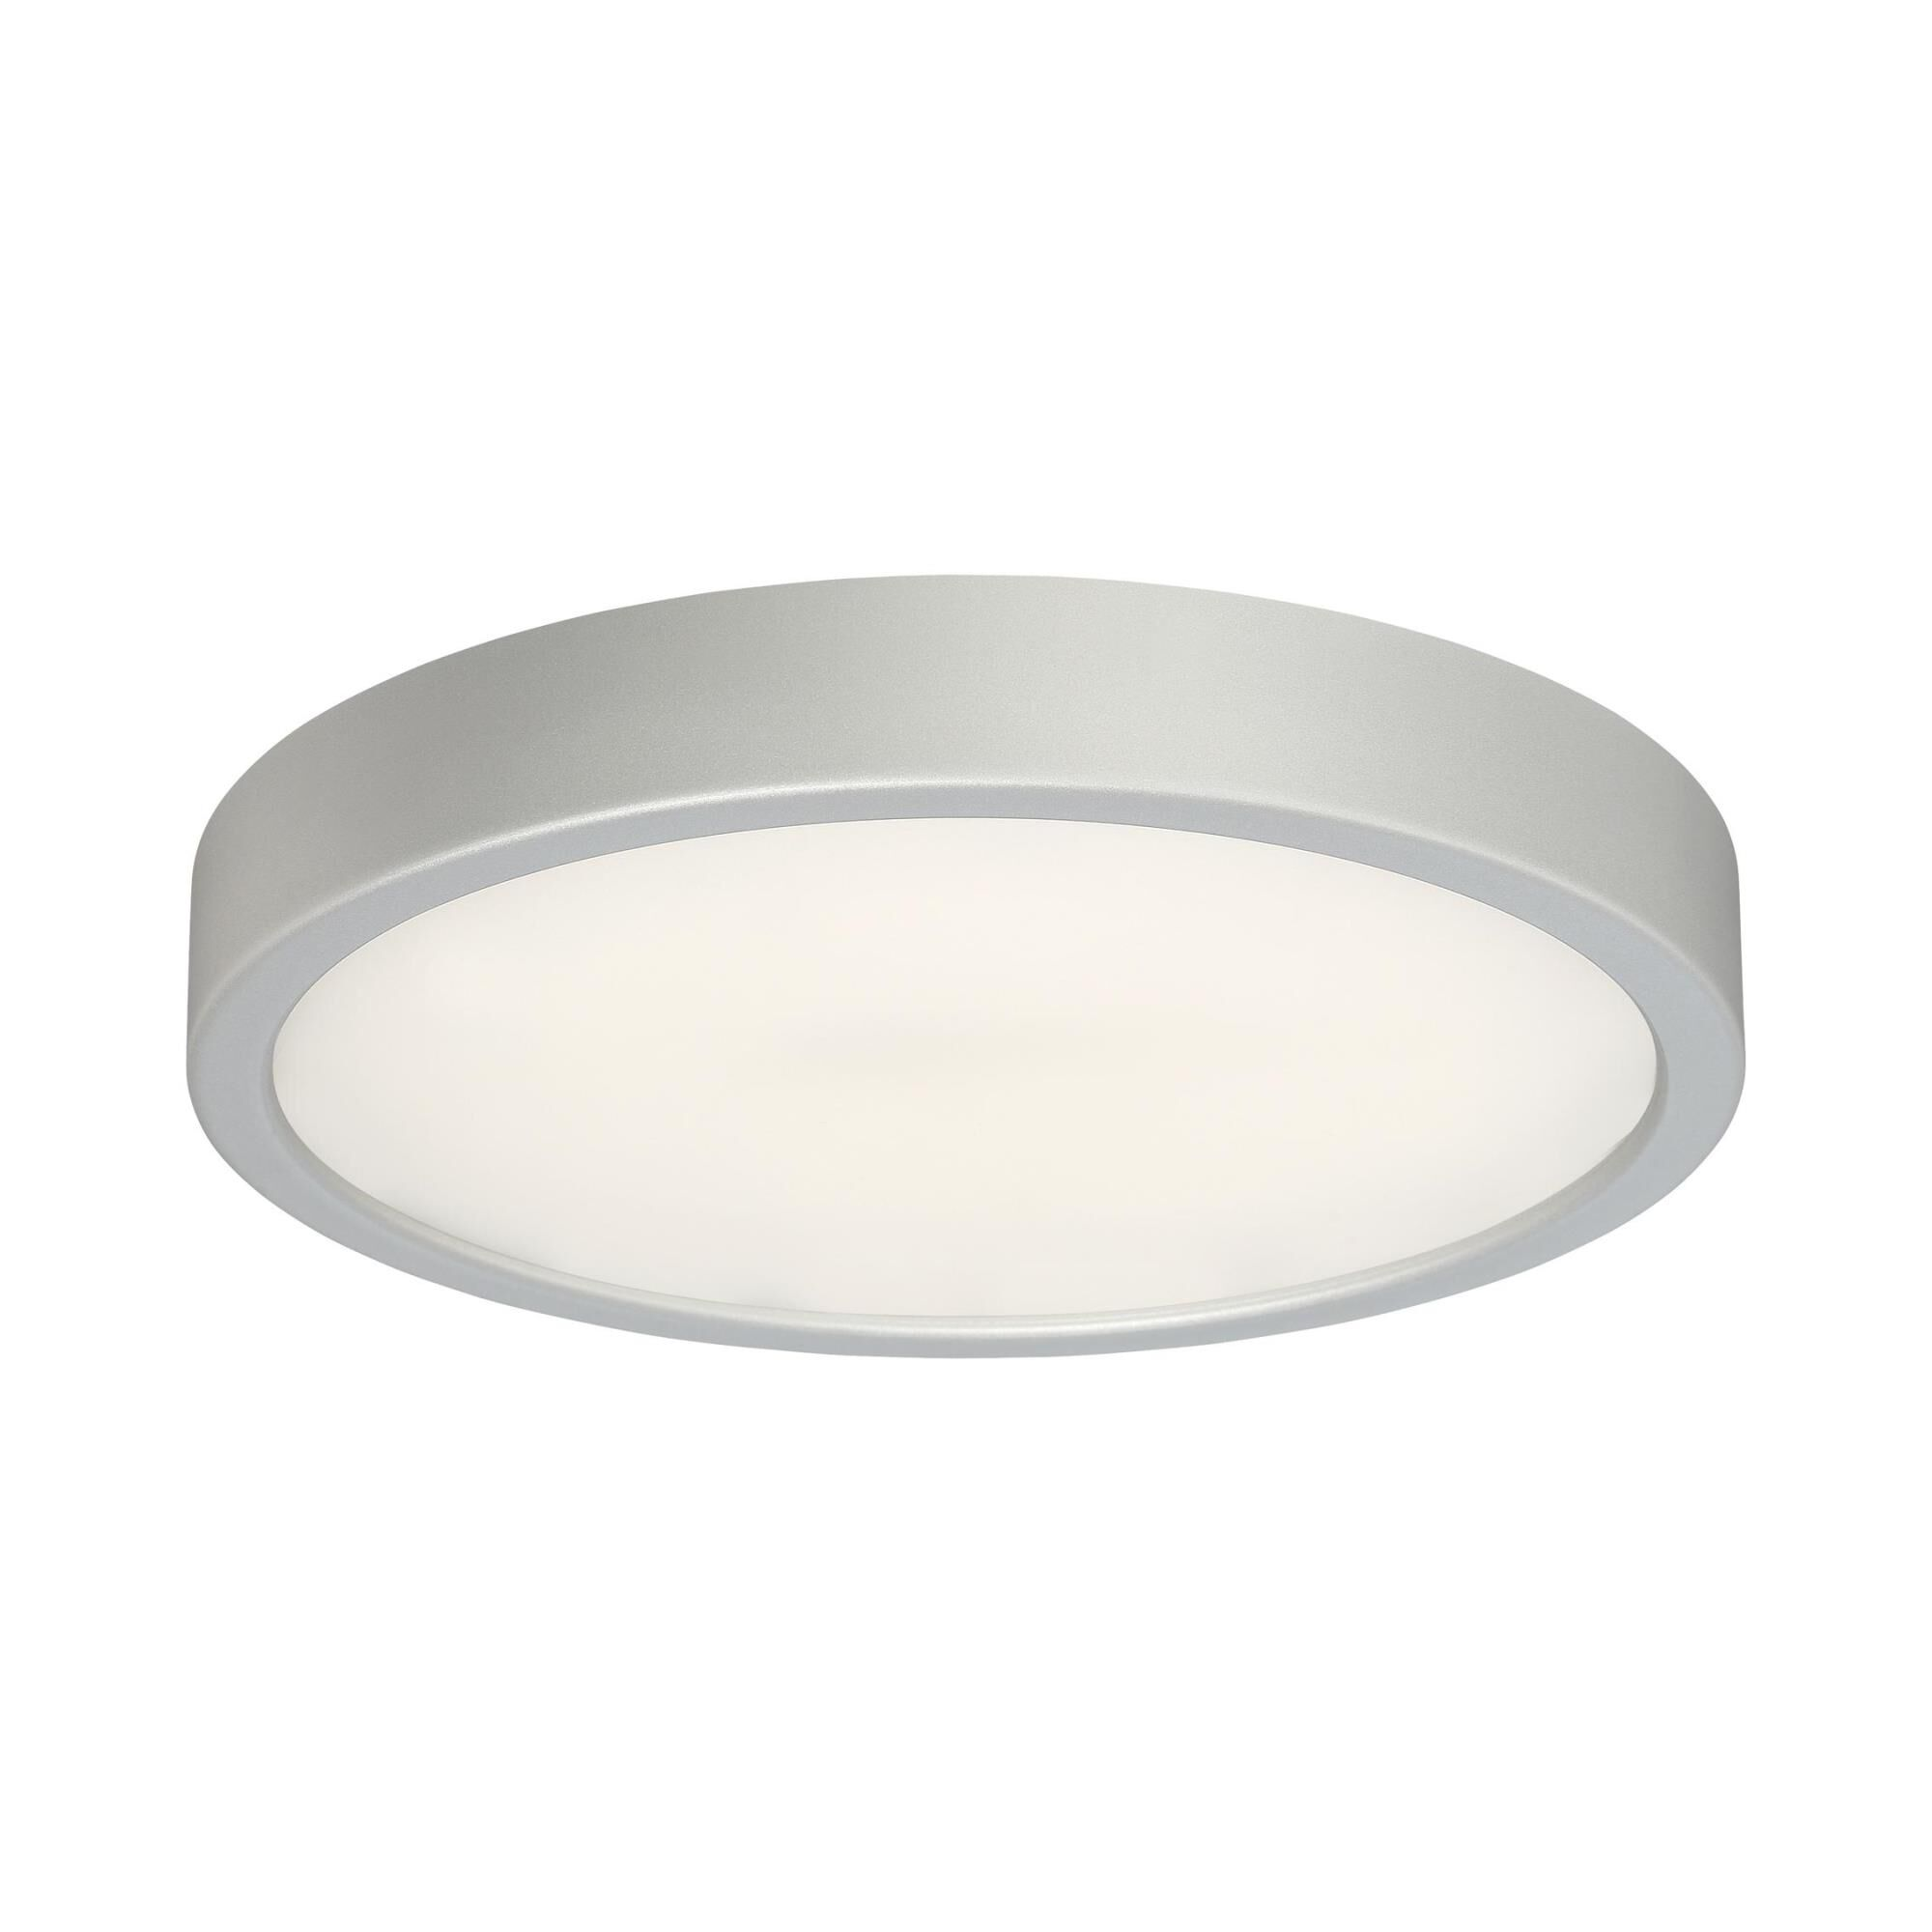 Kovacs 10 Inch 1 Light Led Flush Mount - P842-609-l - Transitional